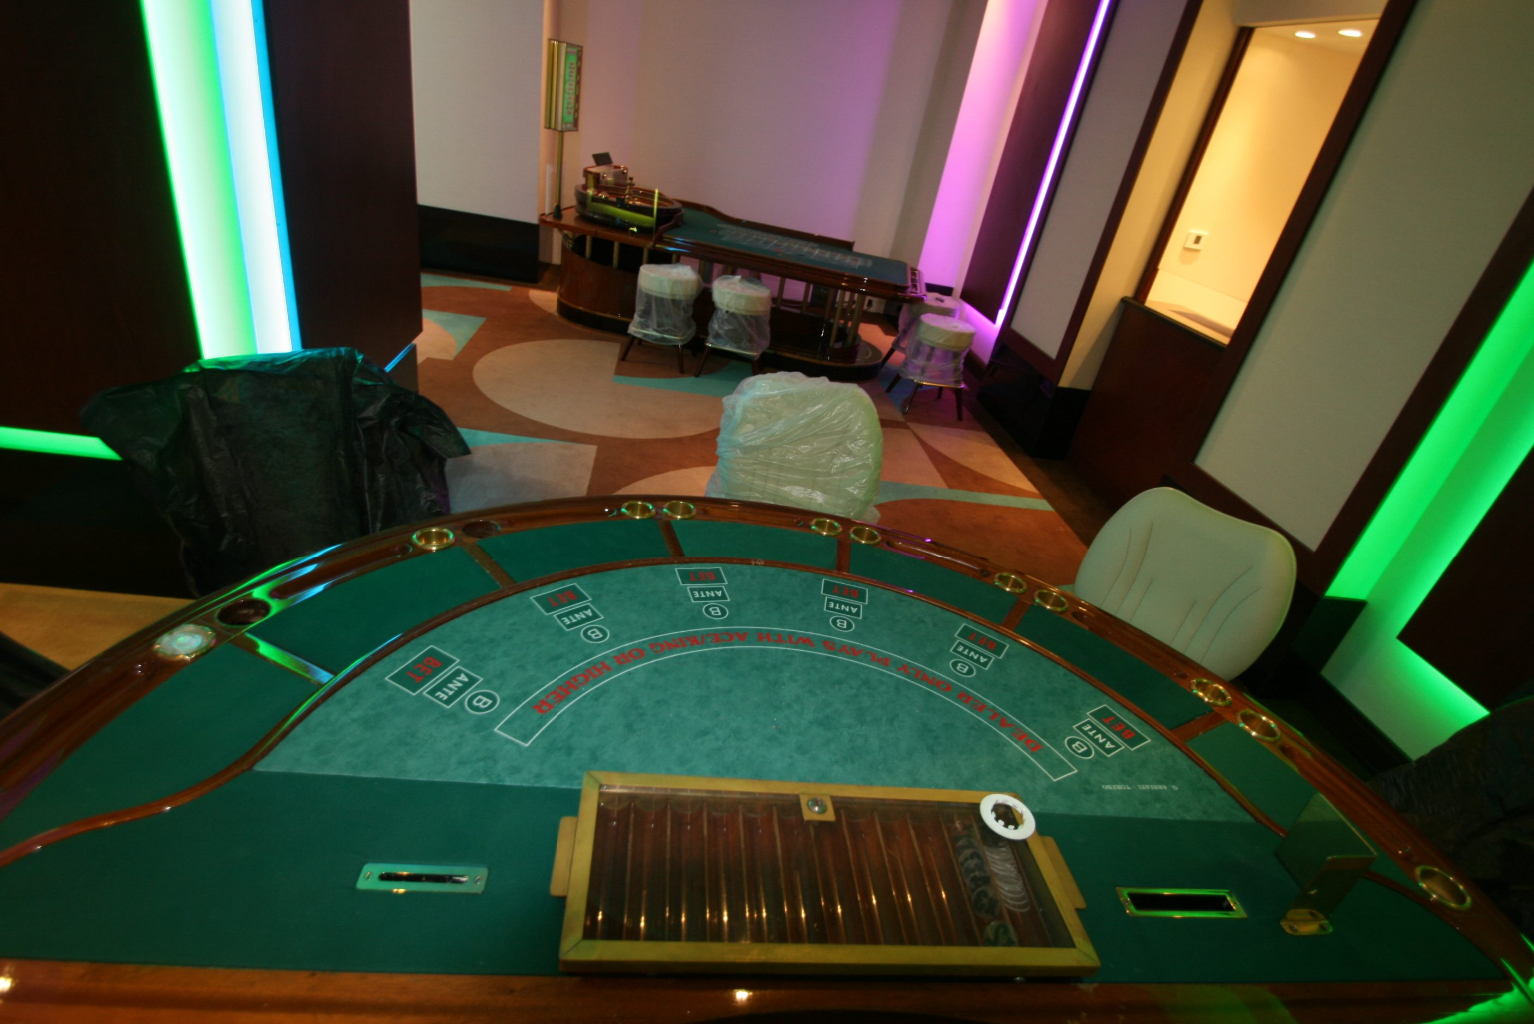 Grand Casino Marriott Bucuresti Bucharest placari pereti rame receptii usi bar bufet240